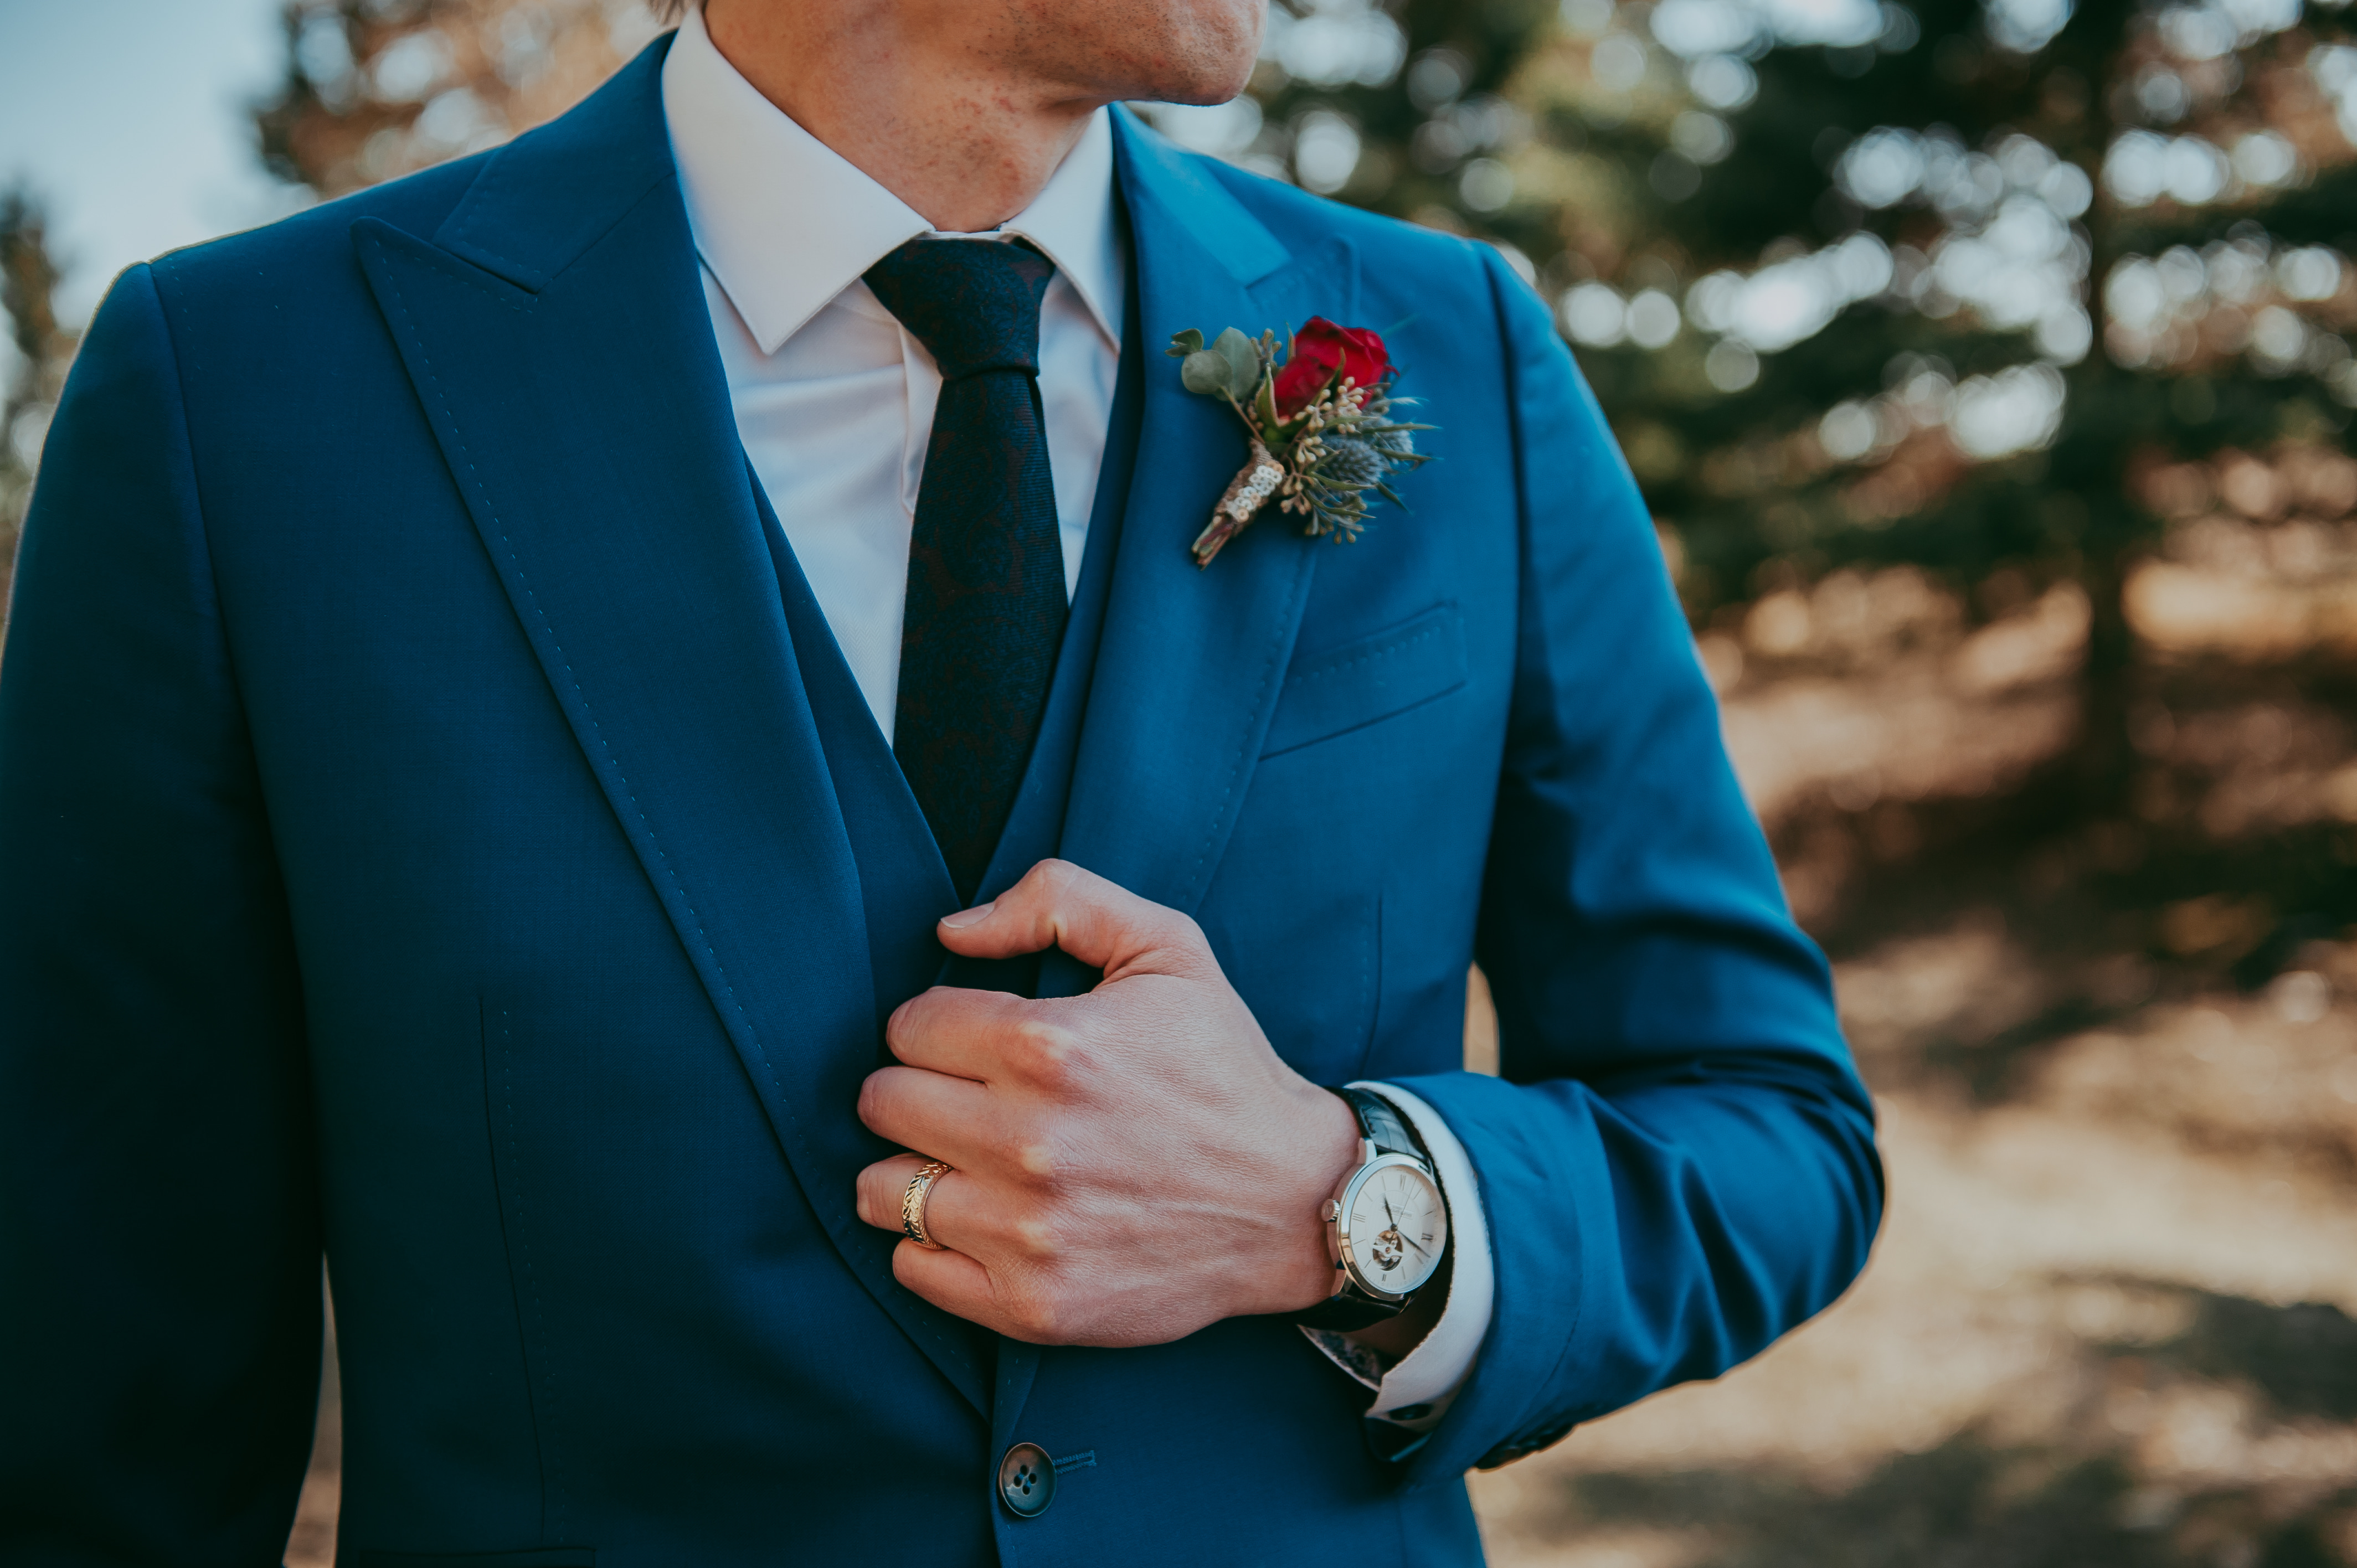 Groom in blue suit wearing a red rose and eryngium boutonniere and watch